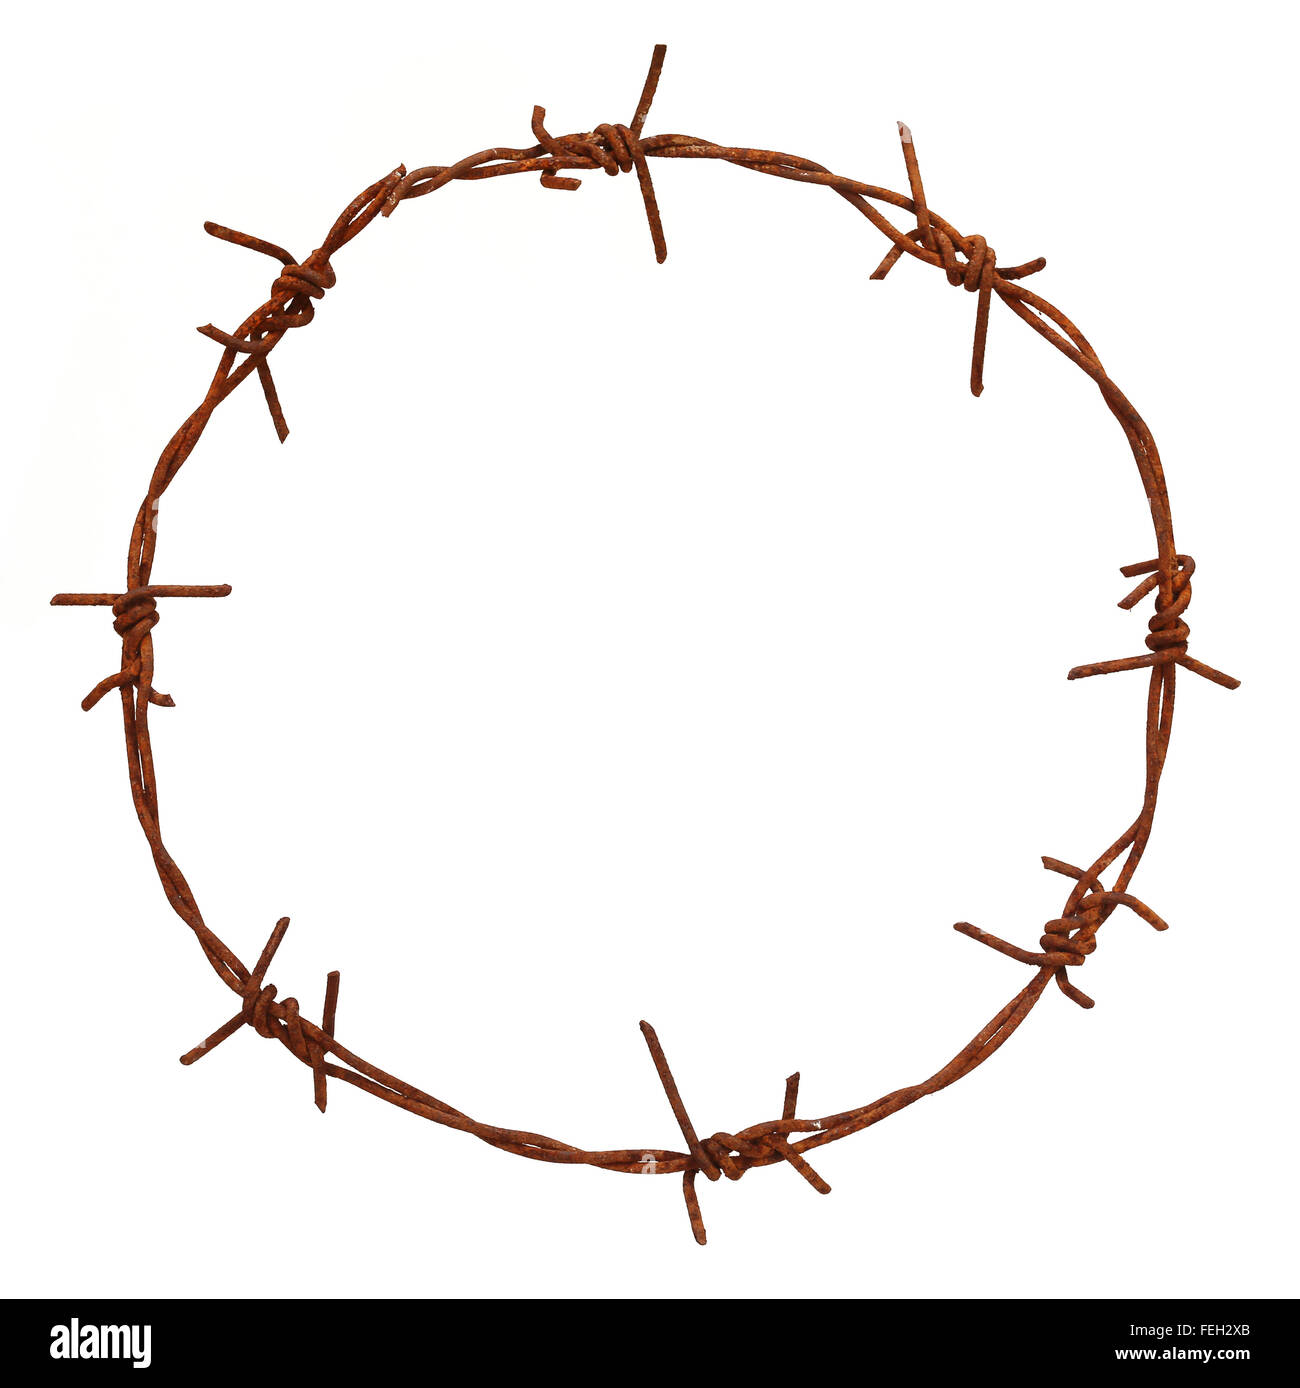 Barbed Wire Cut Out Stock Images & Pictures - Alamy